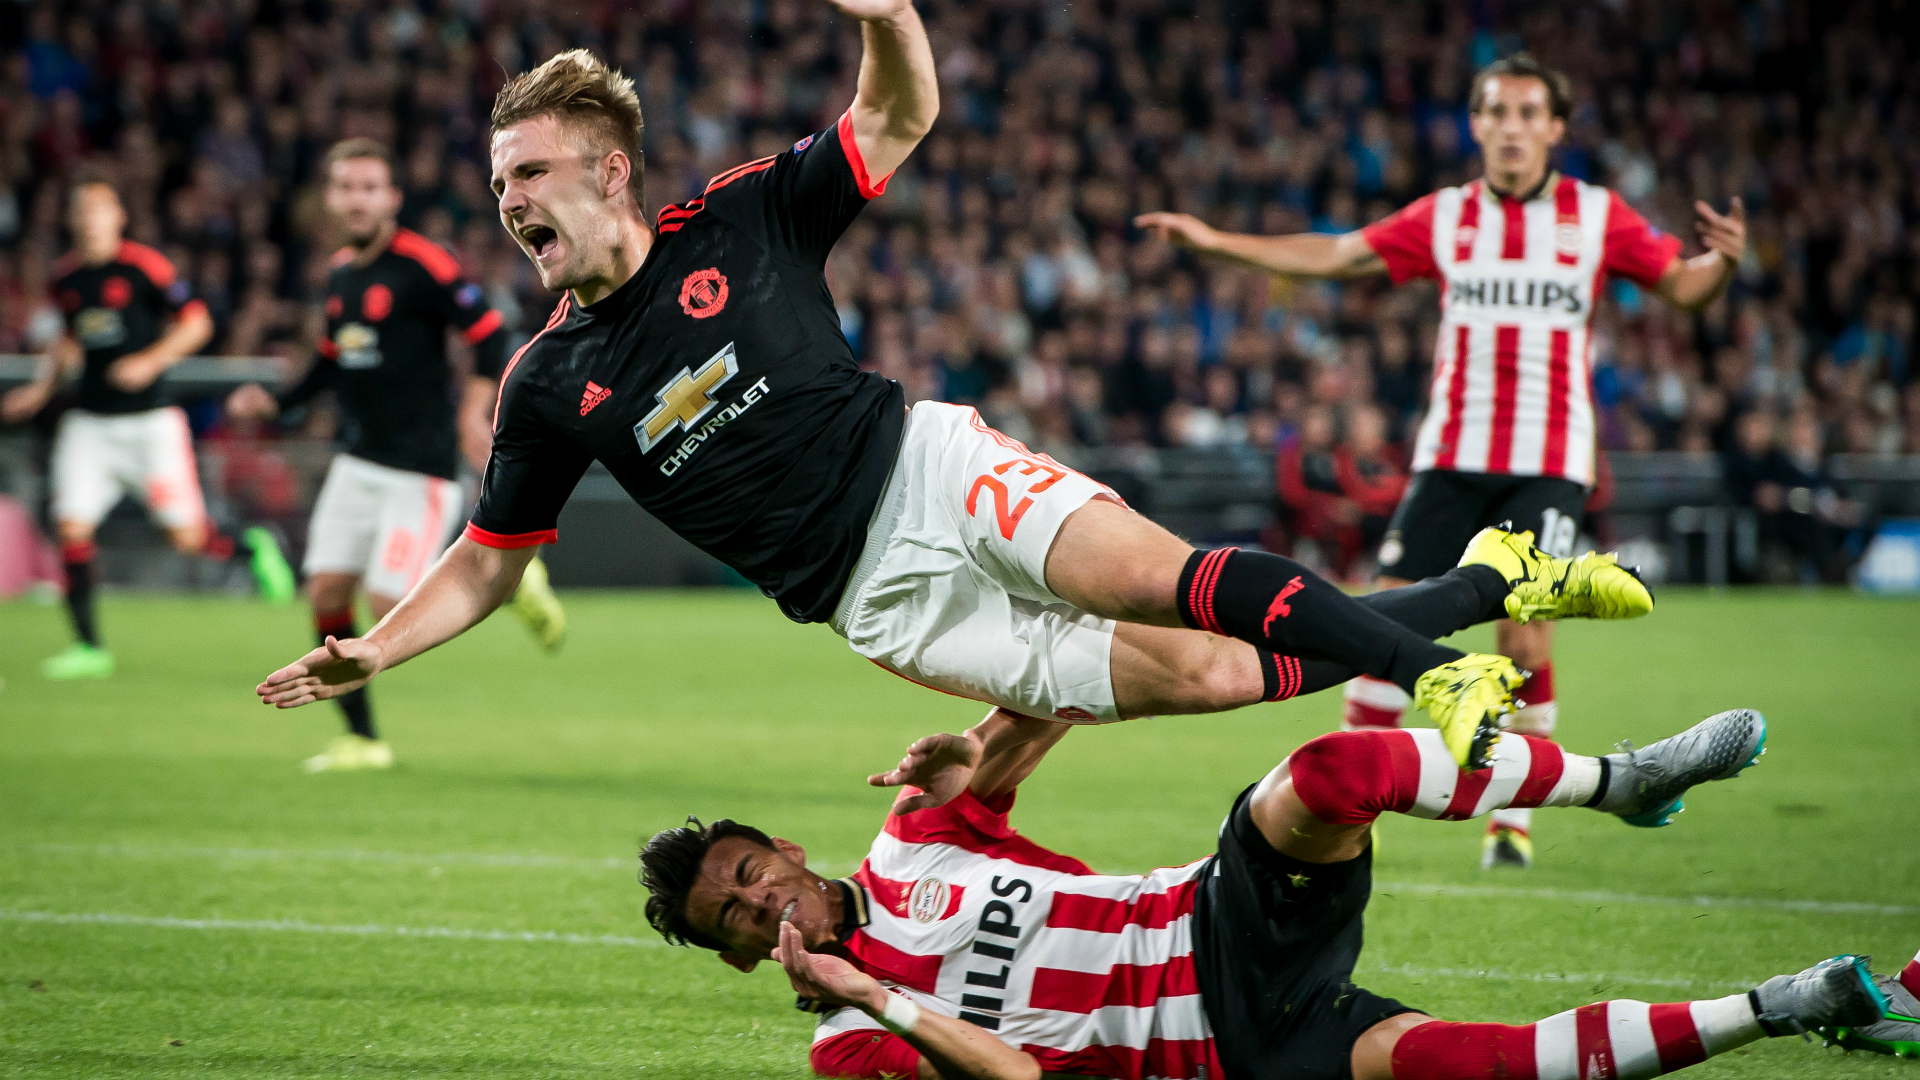 Hector Moreno Luke Shaw PSV Manchester United Champions League 09152015